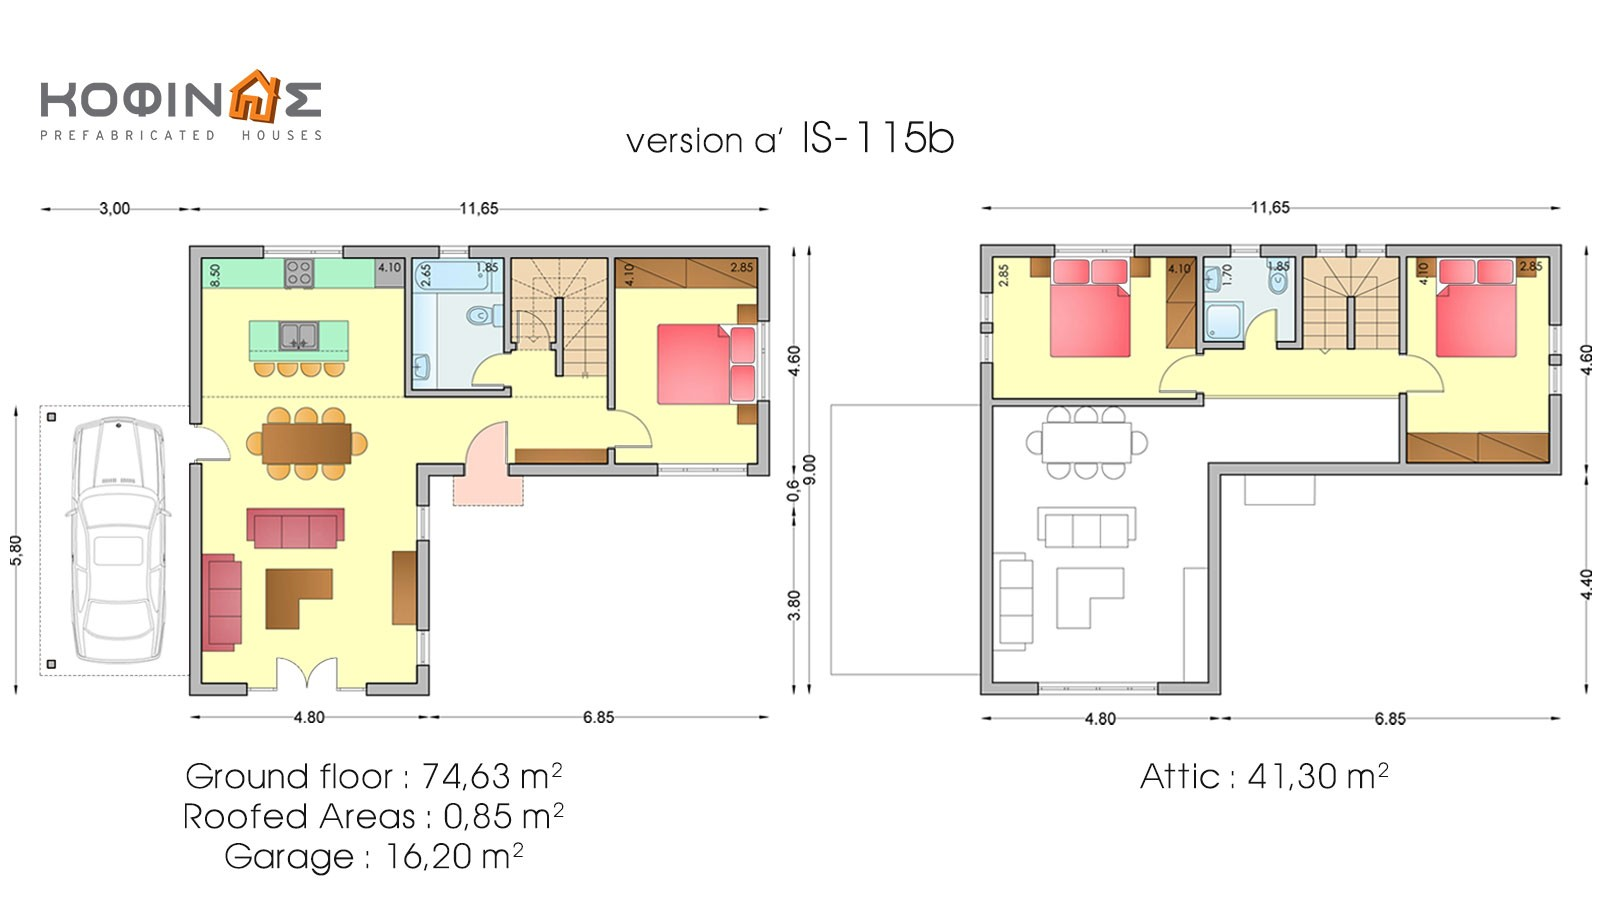 1-story house with attic IS-115b, habitable space of 115,90 m²